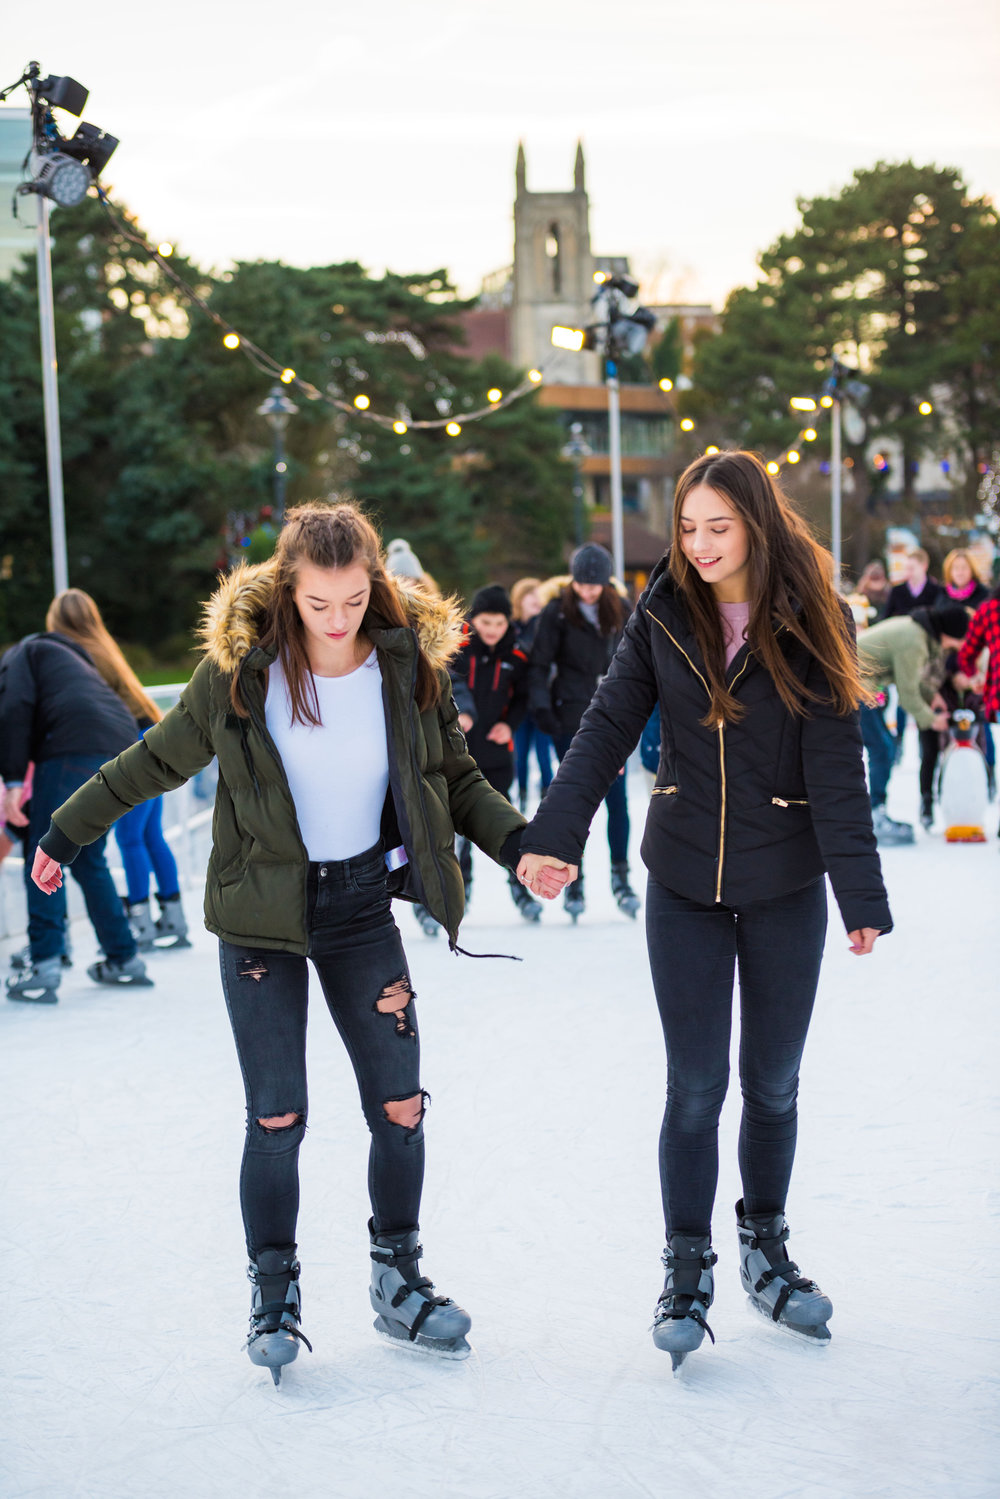 Bournemouth-Ice-Rink---December-2016---Photography-by-Sirius-Art---Full-Resolution-(27).jpg